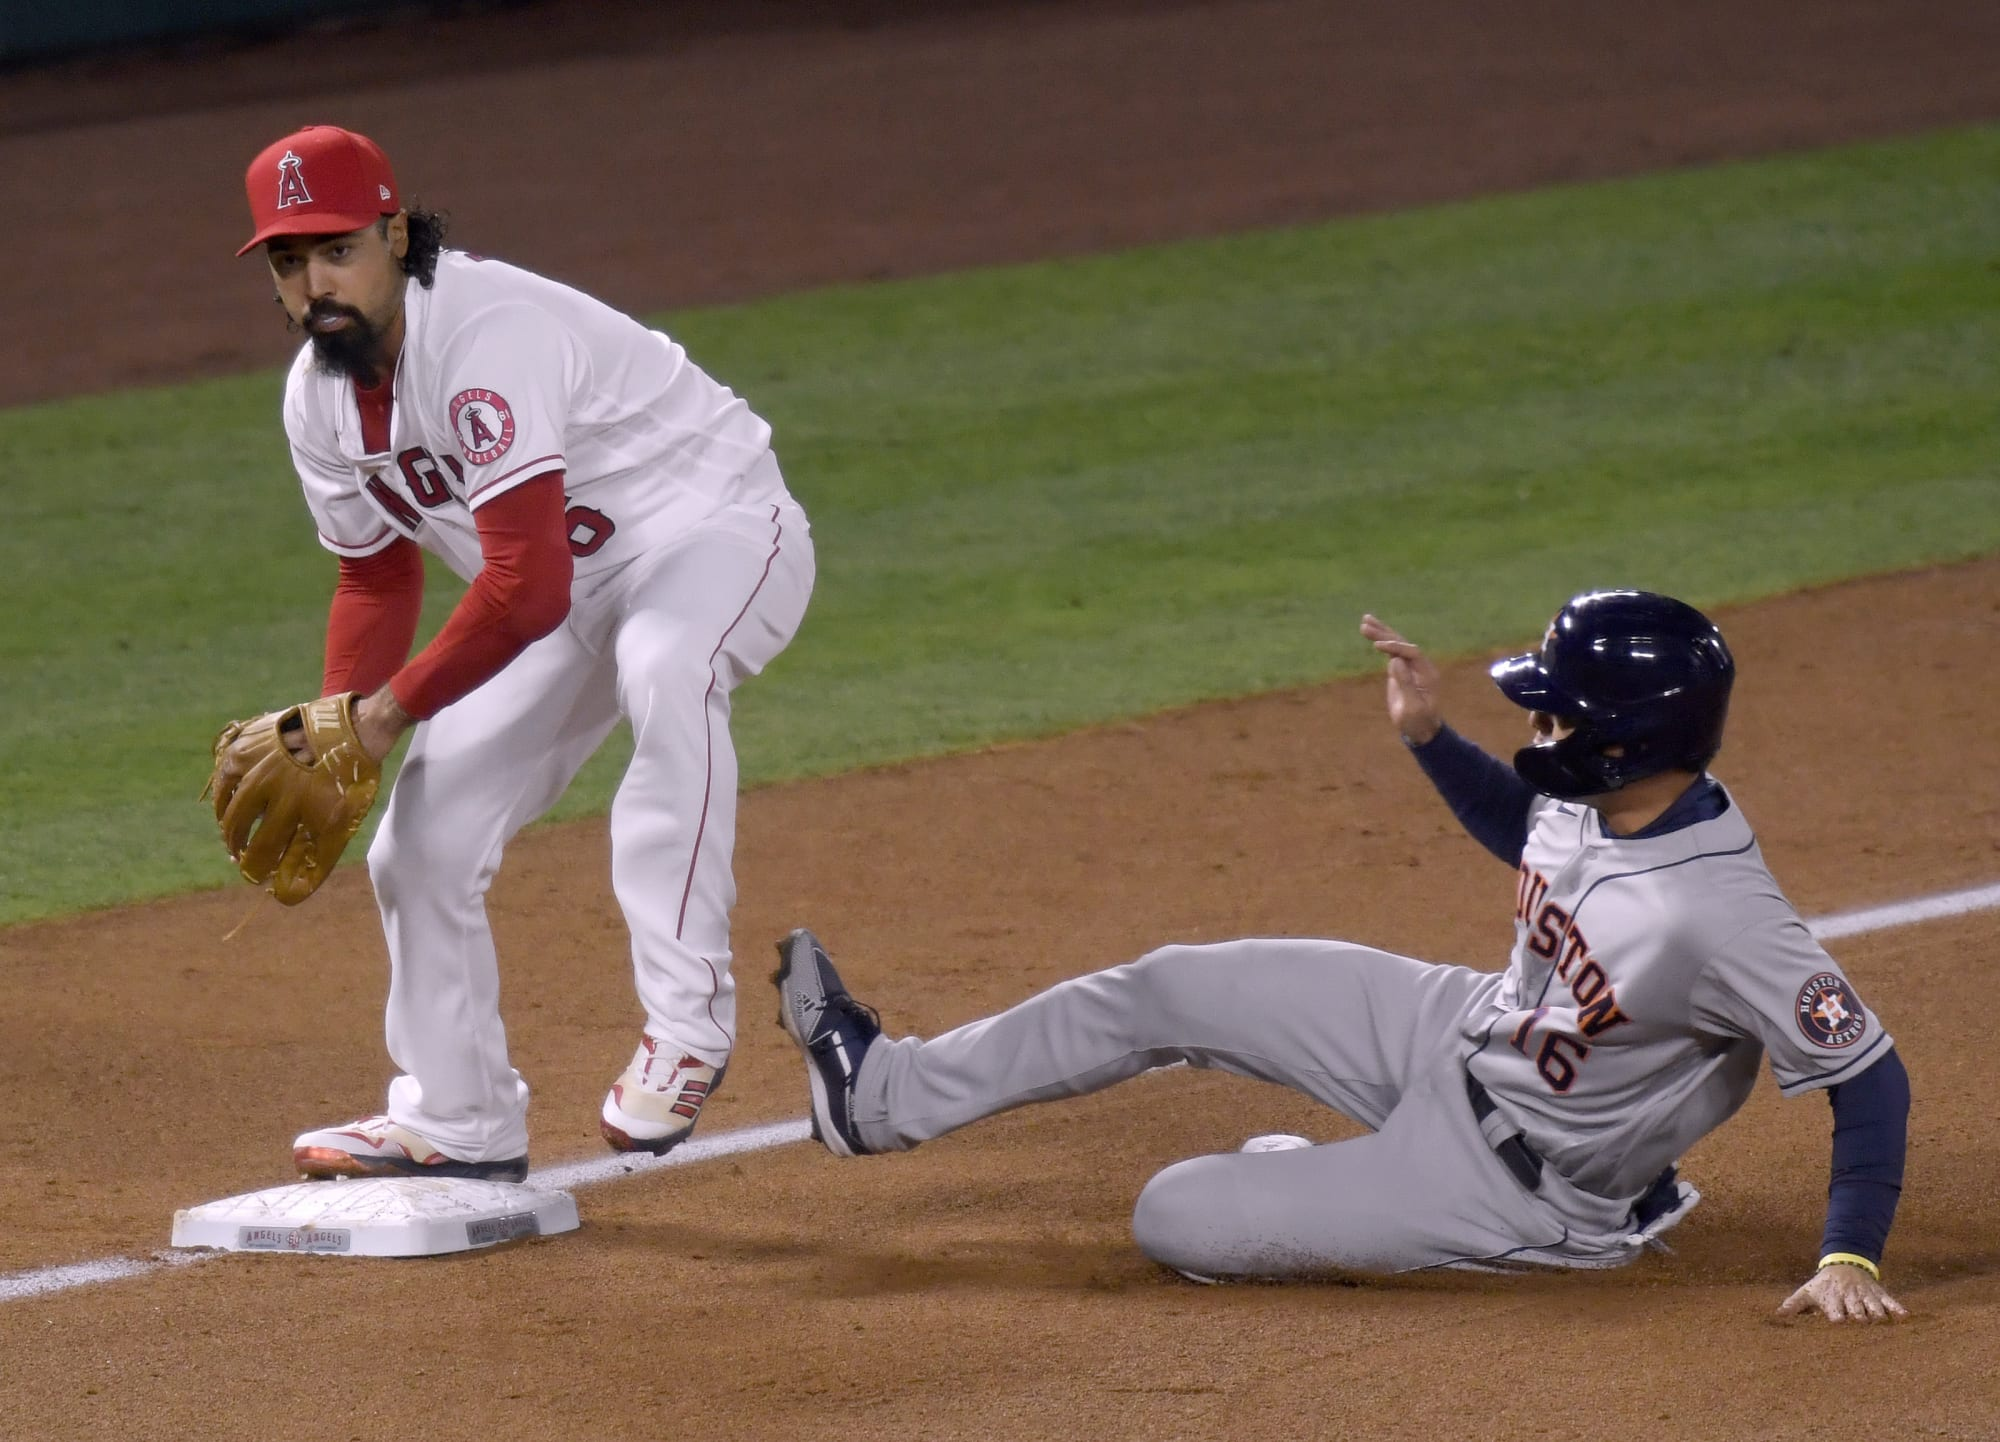 Astros' Aledmys Diaz does a full split with acrobatic stretch on basepaths (Video)